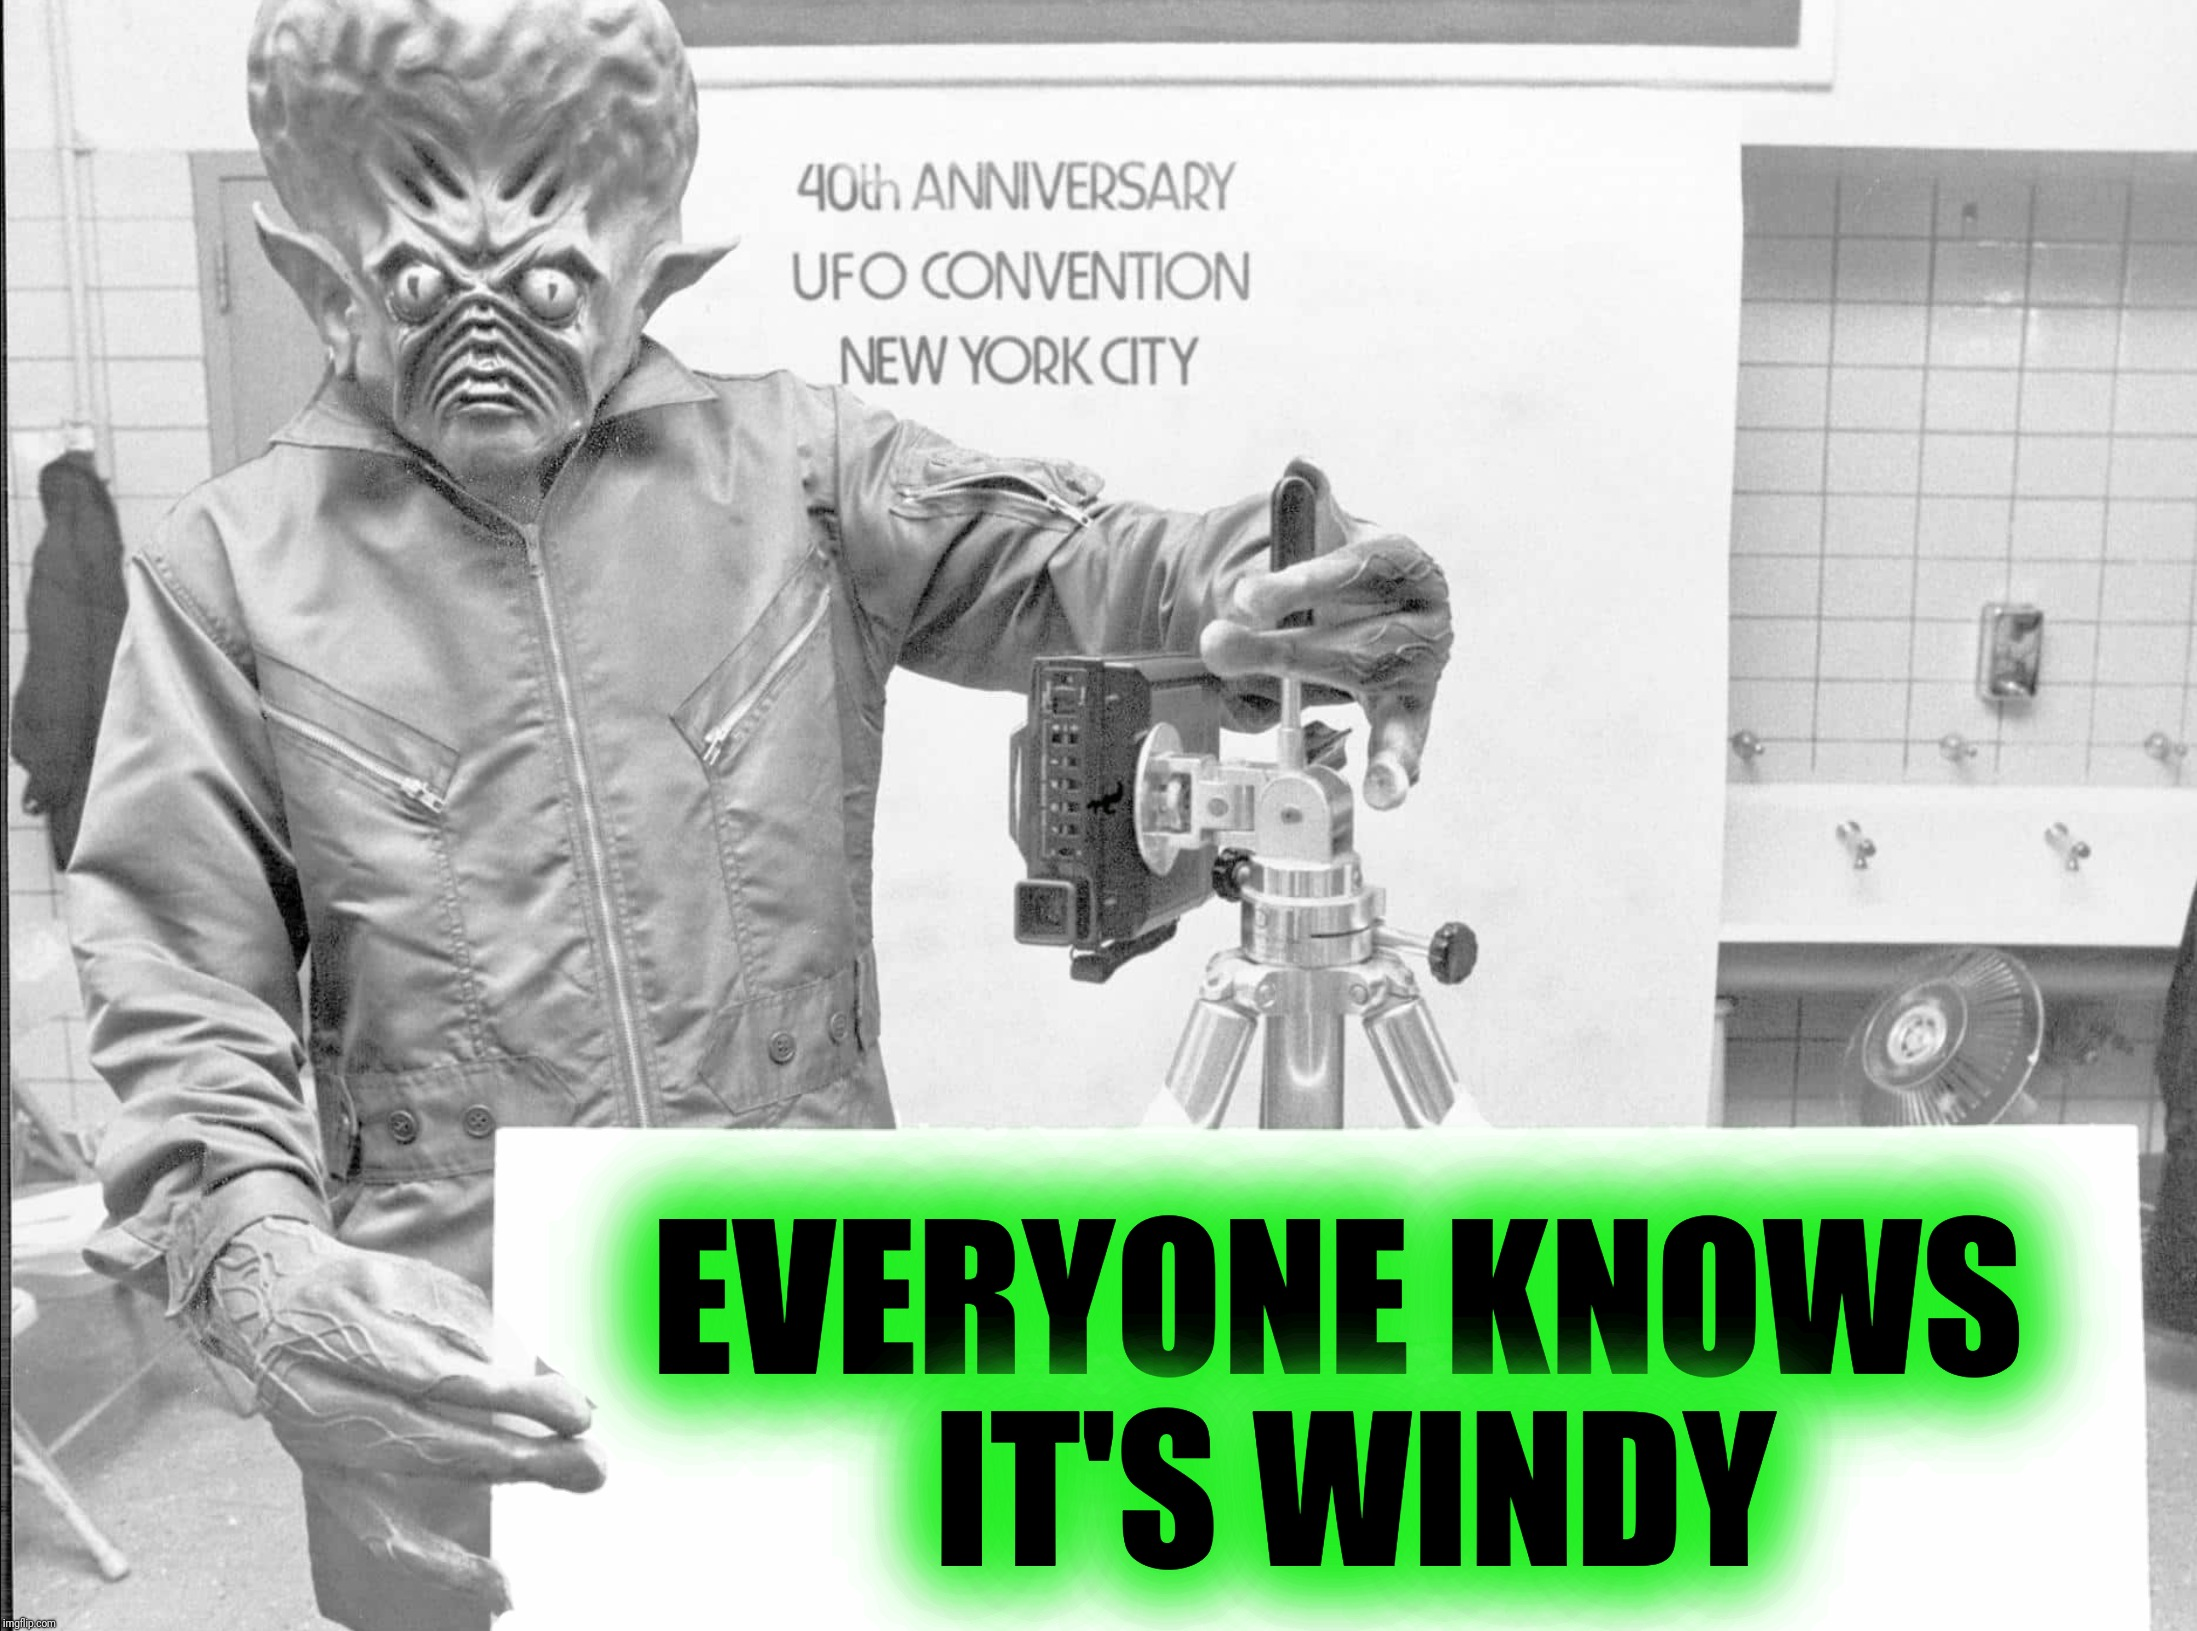 EVERYONE KNOWS IT'S WINDY | made w/ Imgflip meme maker